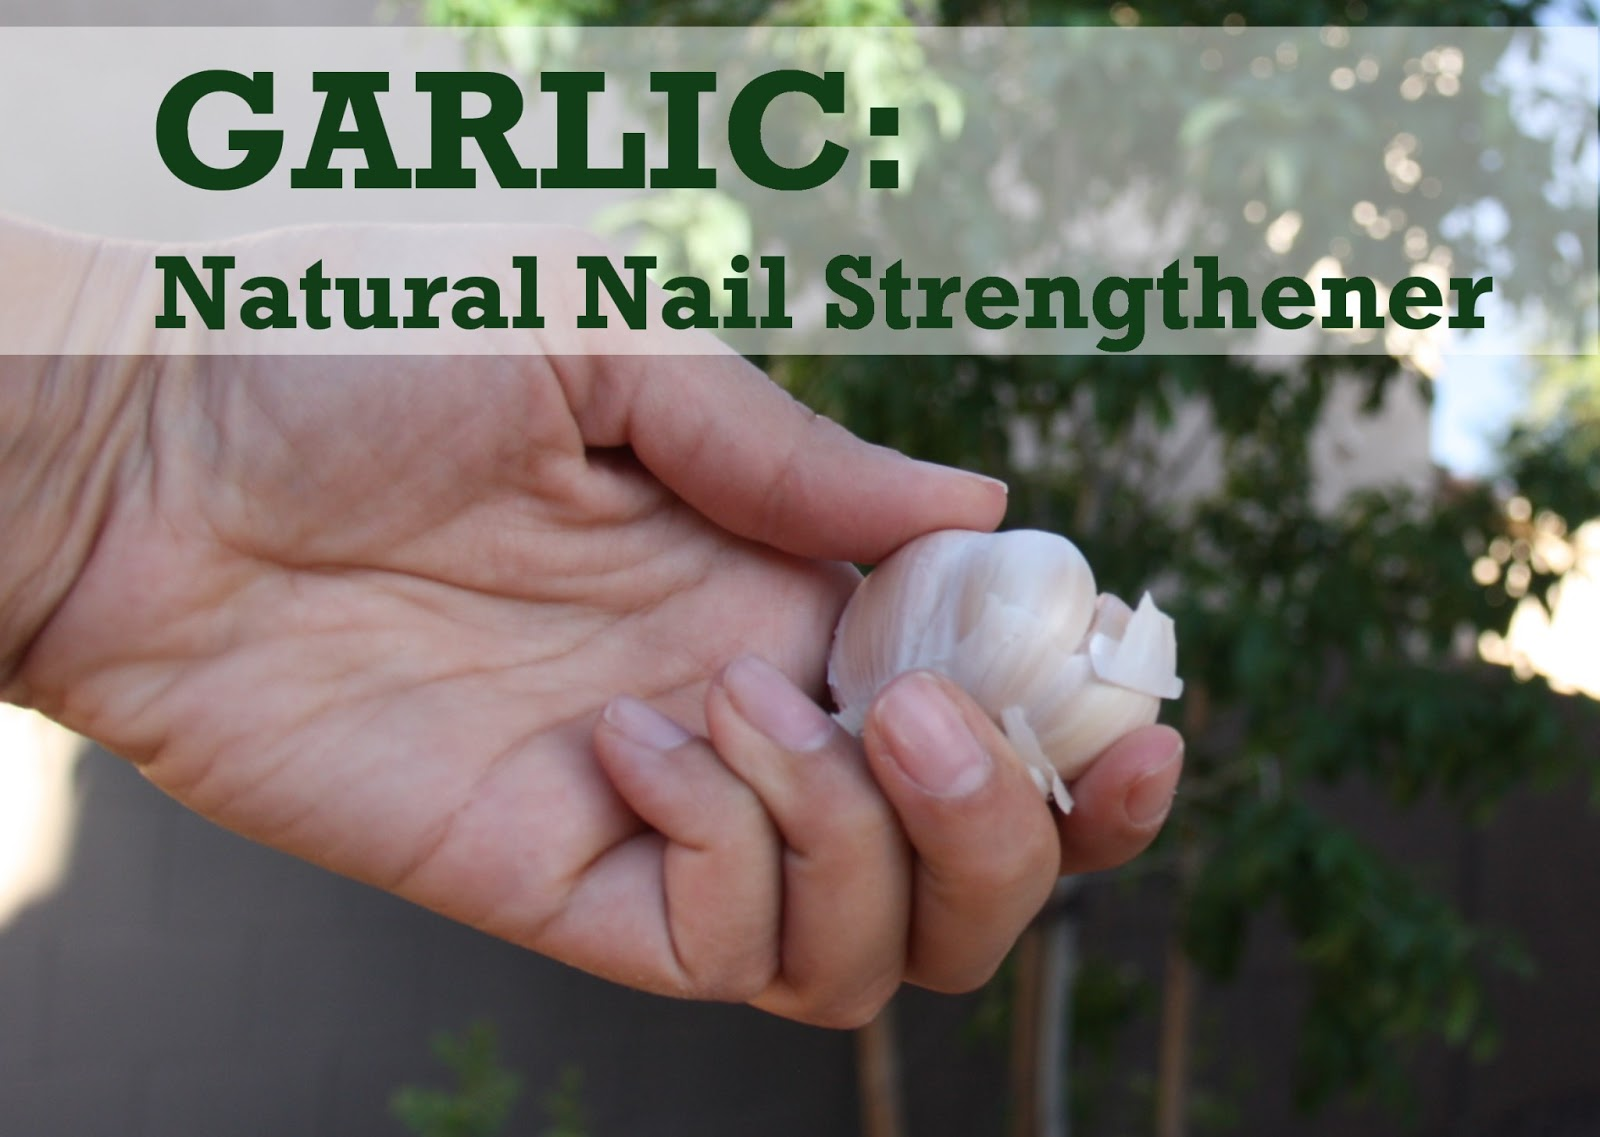 HOW TO: Strengthen Nail Naturally - The Lovebugs Blog